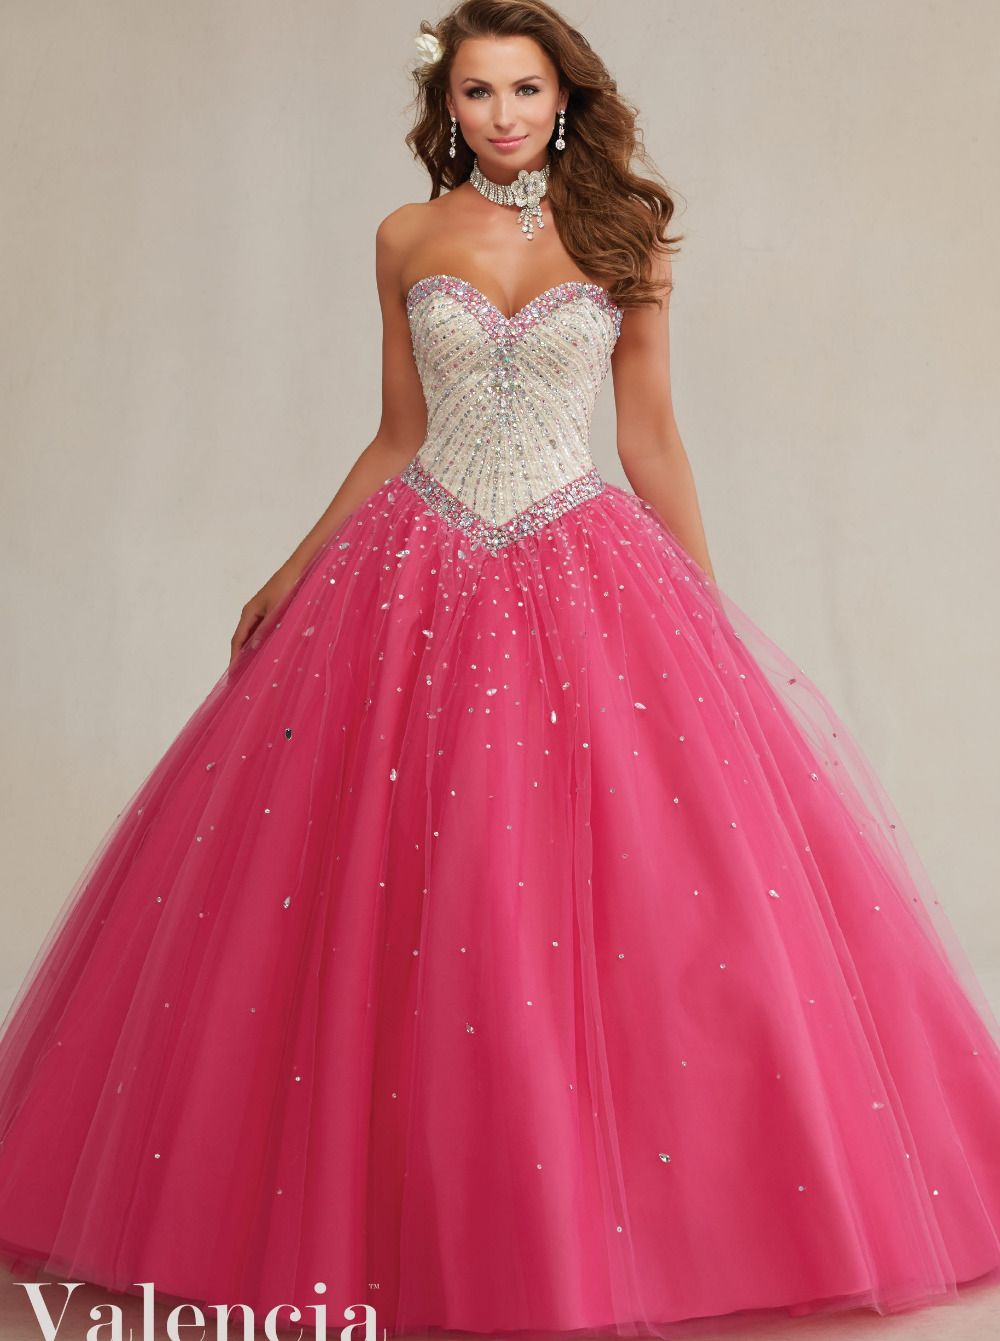 Elegant Ruffle Tulle Ball Gown Nude Top Hot Pink Two Tones ...